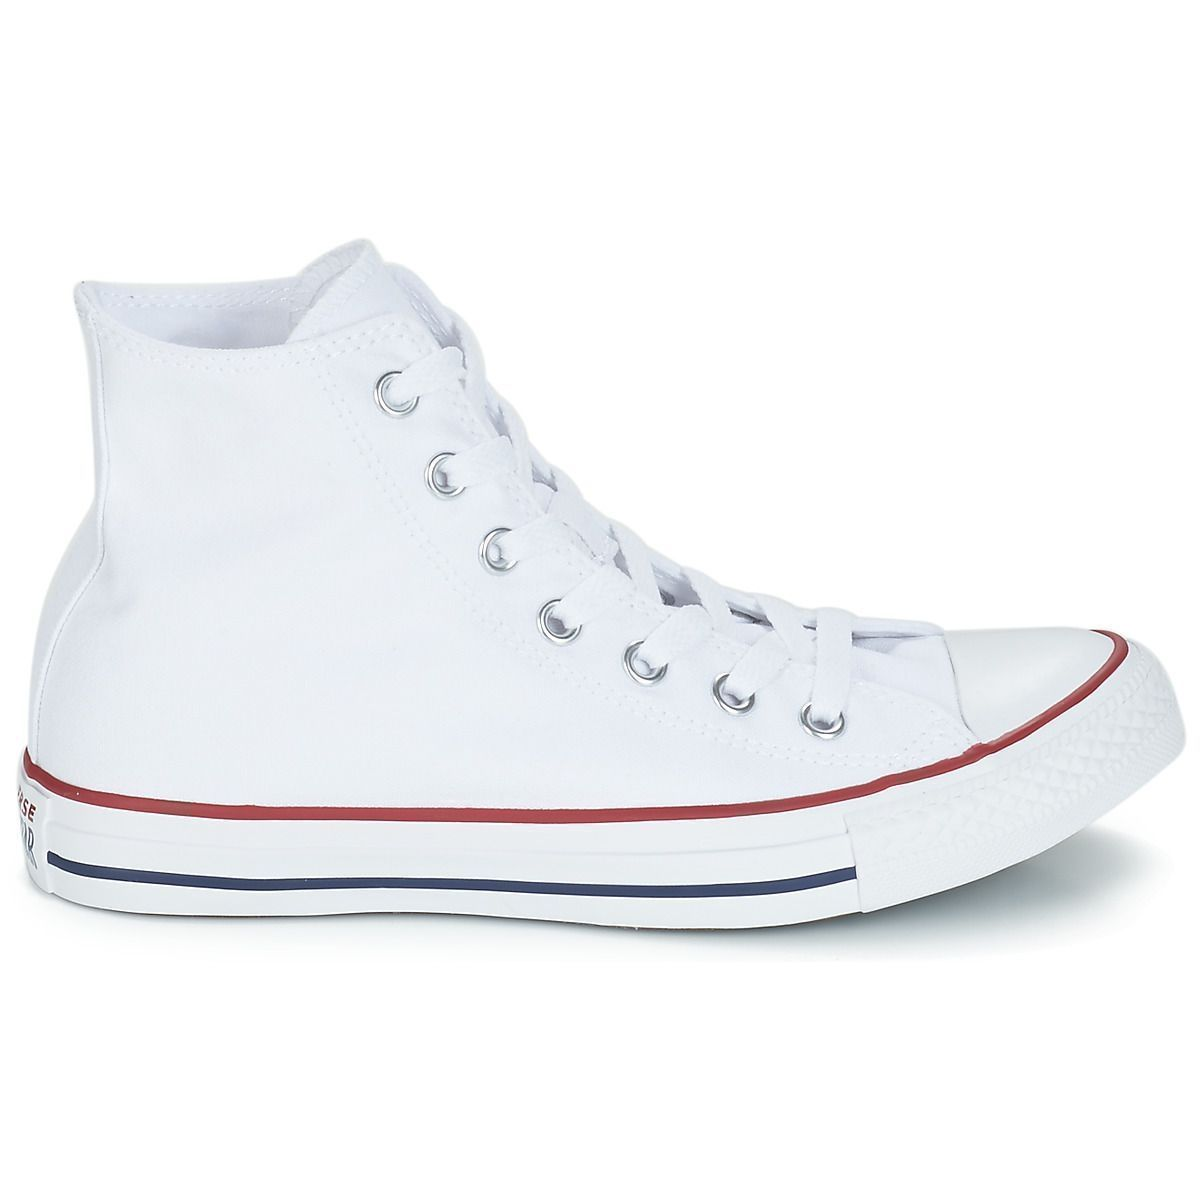 Converse fille ctas all star hi blanc